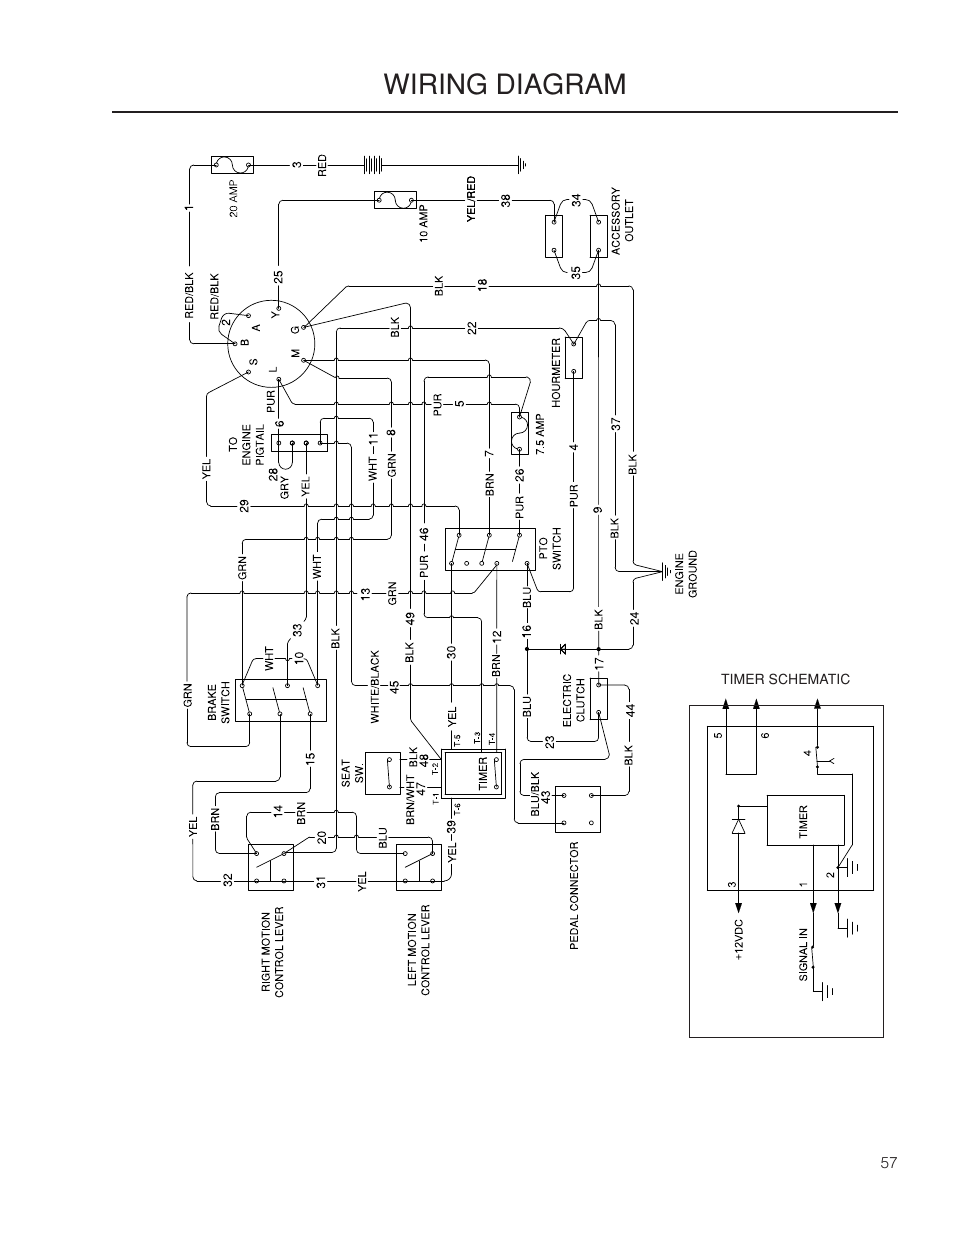 Wiring diagrams, Wiring diagram | Dixon Grizzly SE 966516601 User Manual |  Page 57 / 72